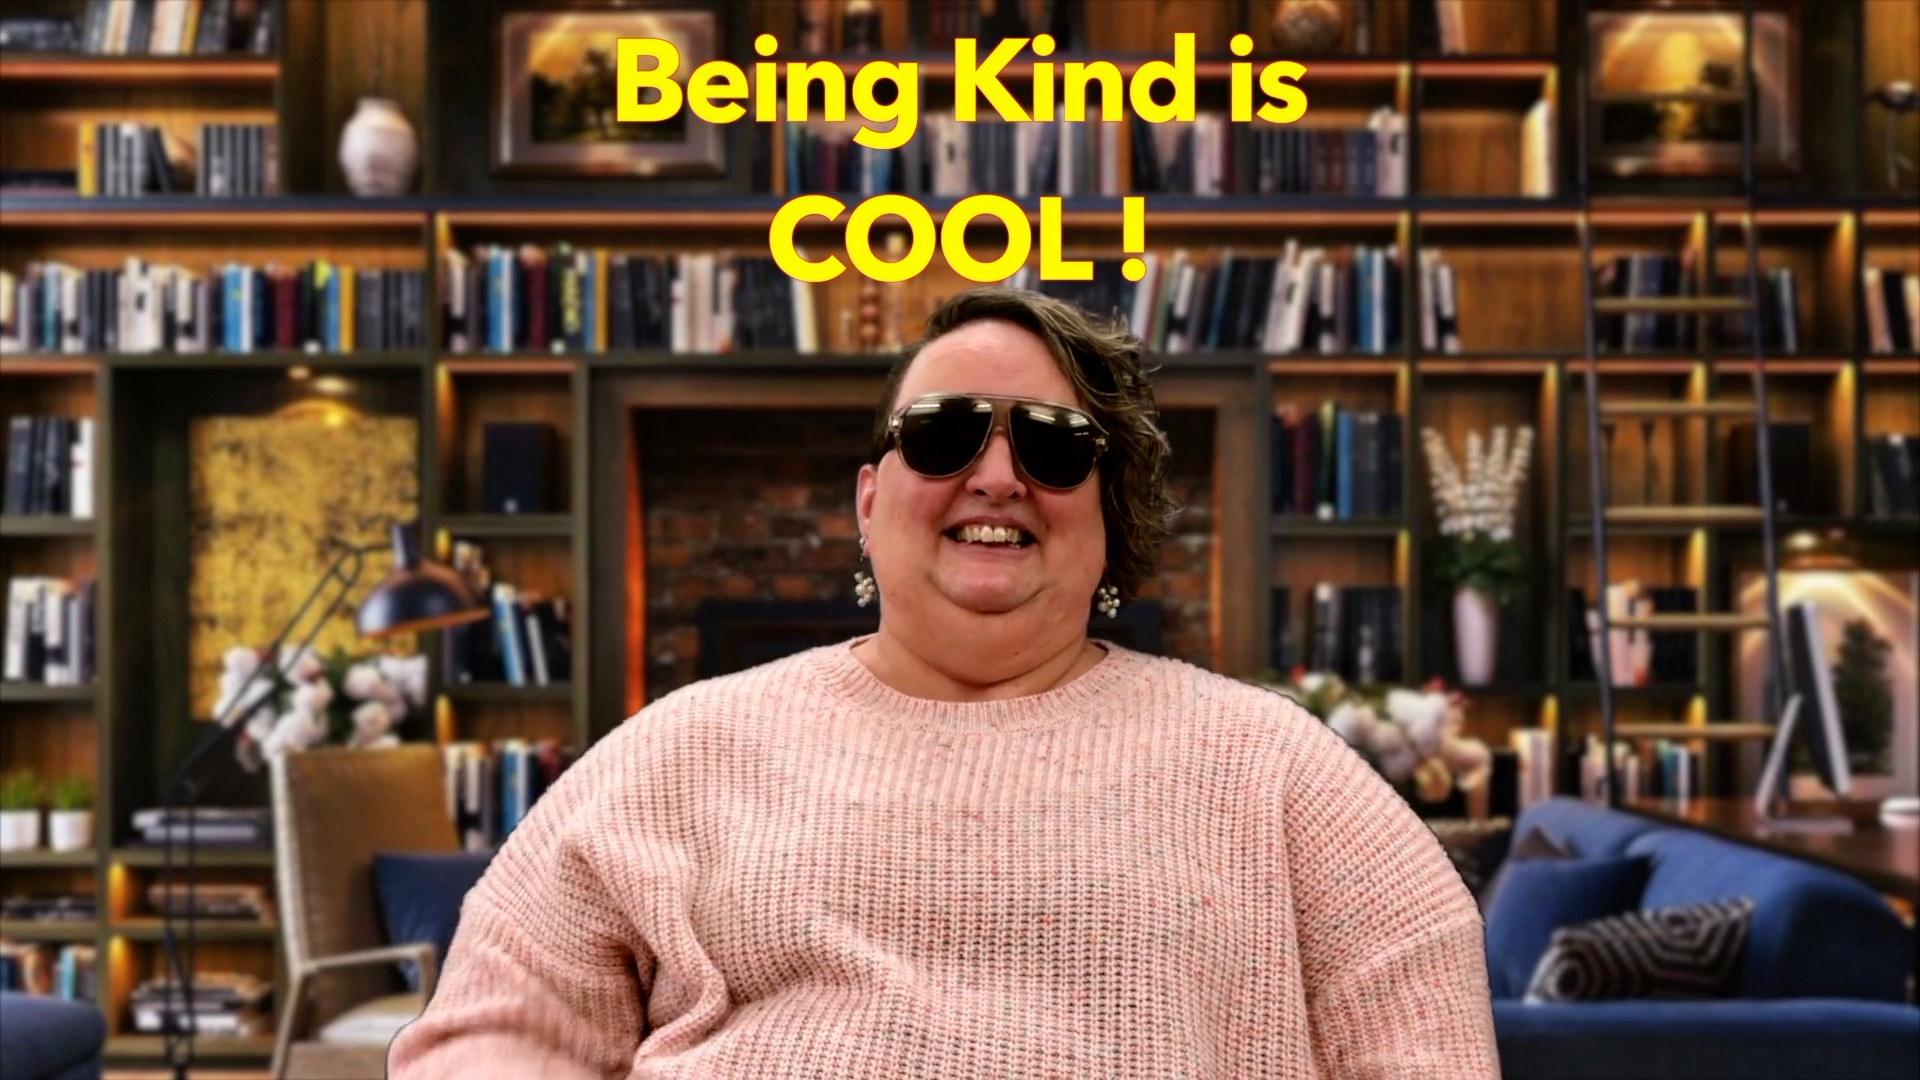 Being Kind is Cool STILL